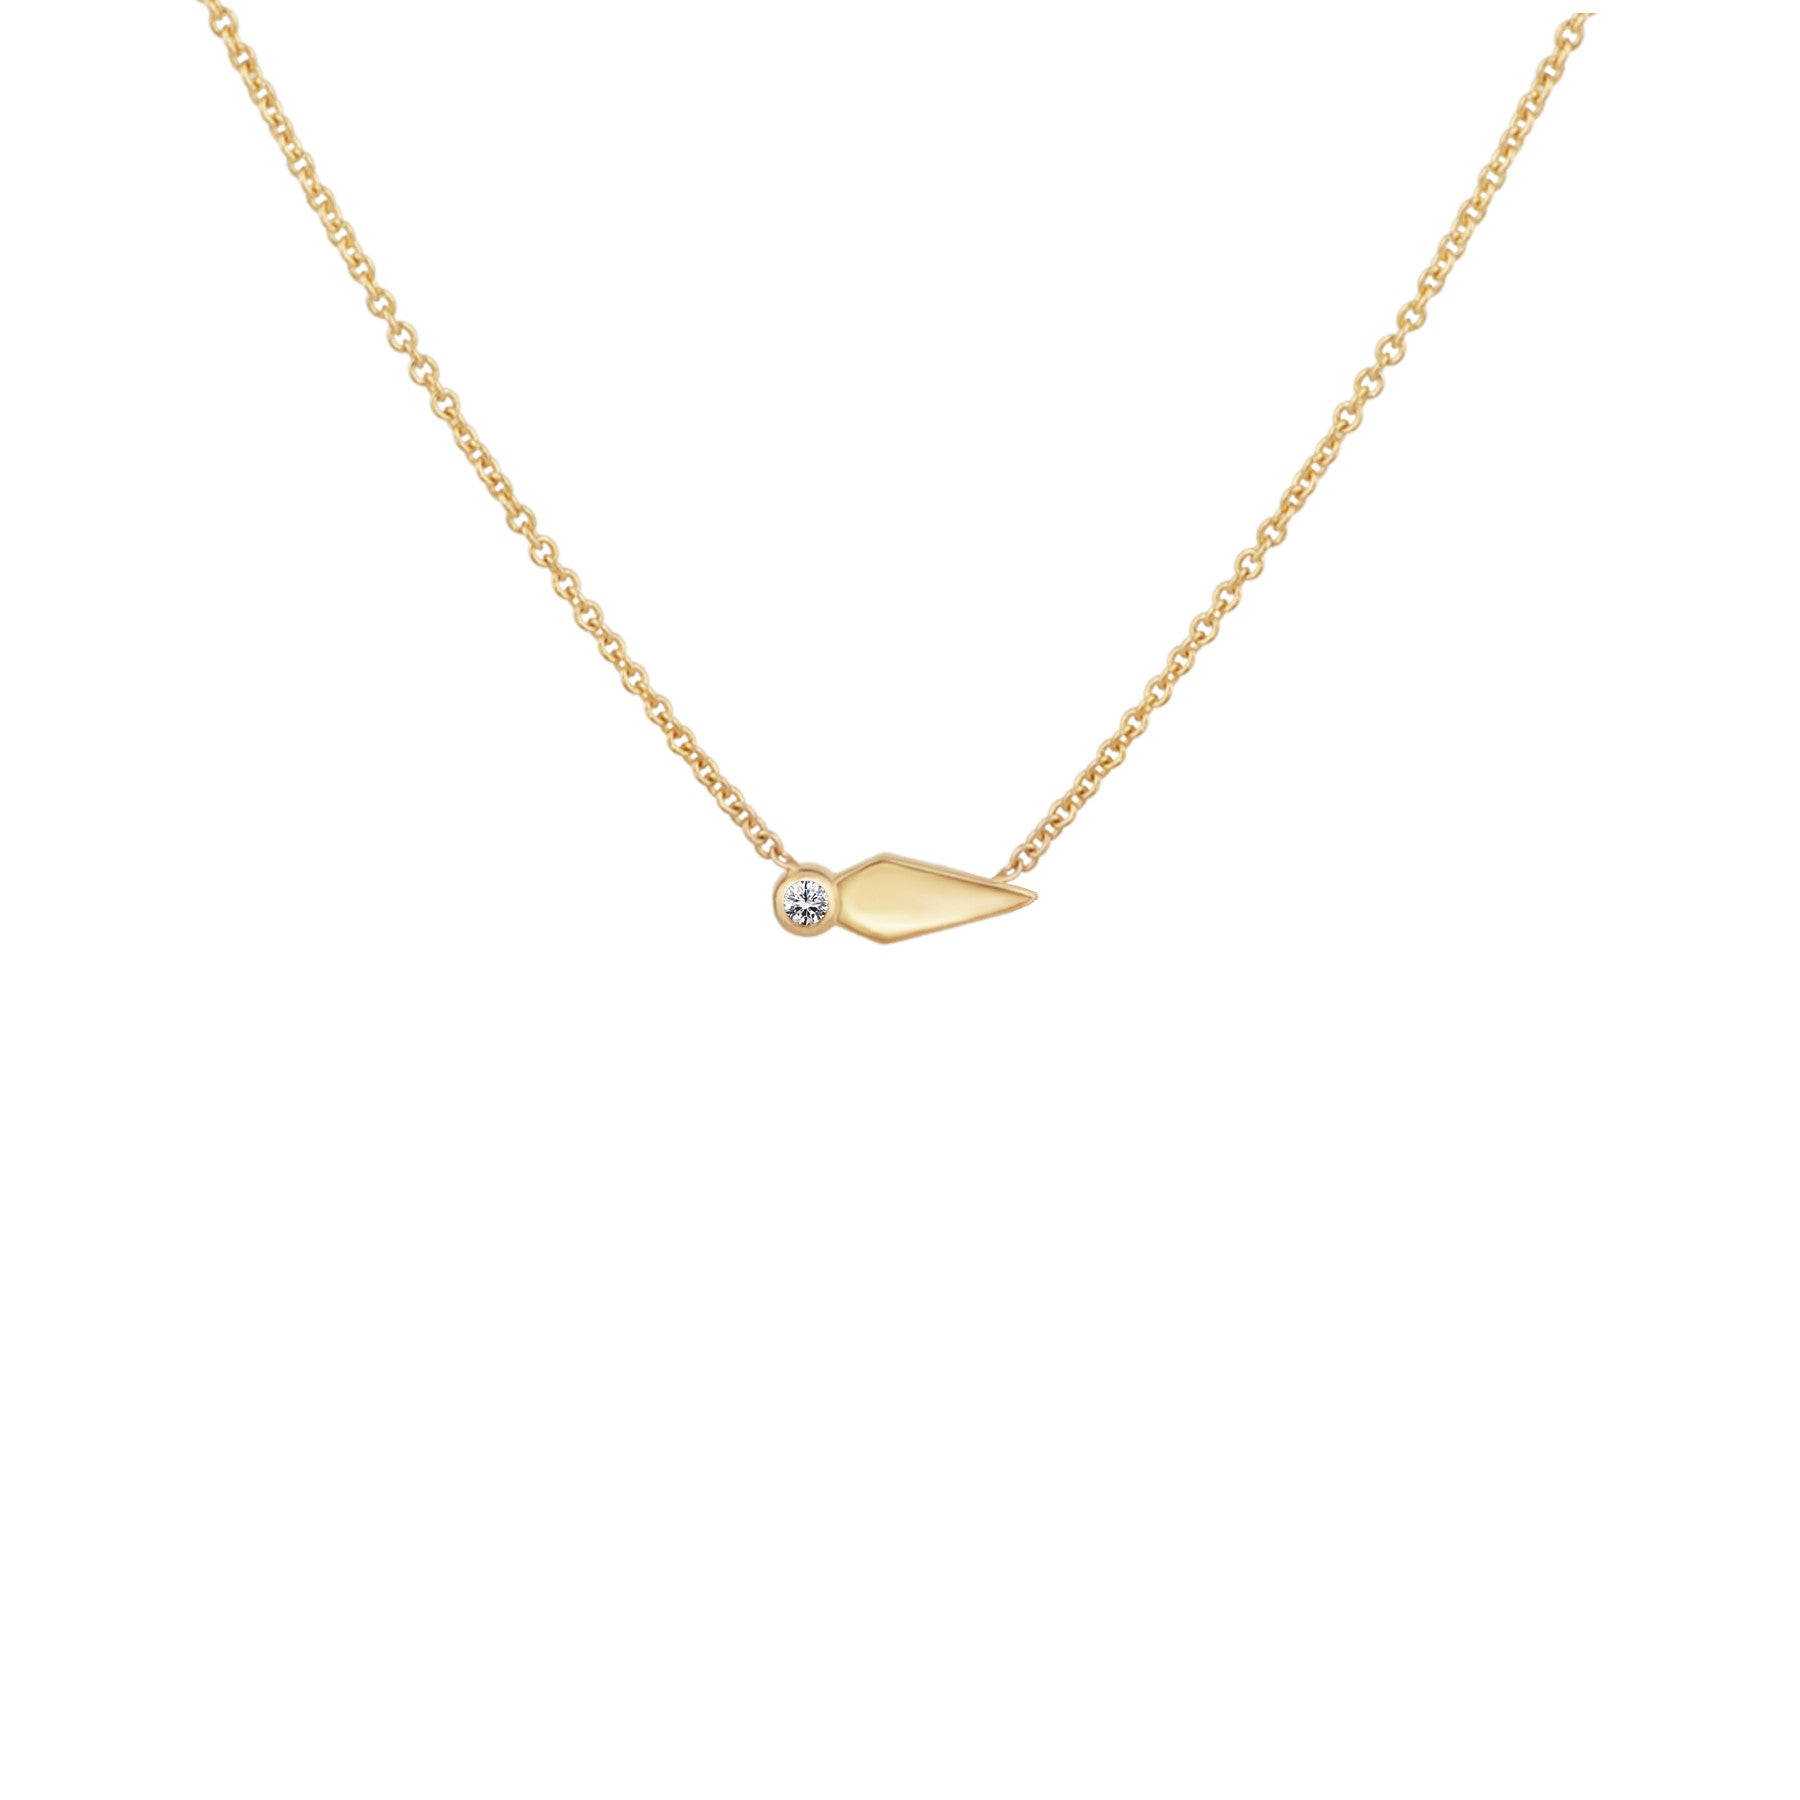 SHOOTING STAR NECKLACE WITH DIAMOND